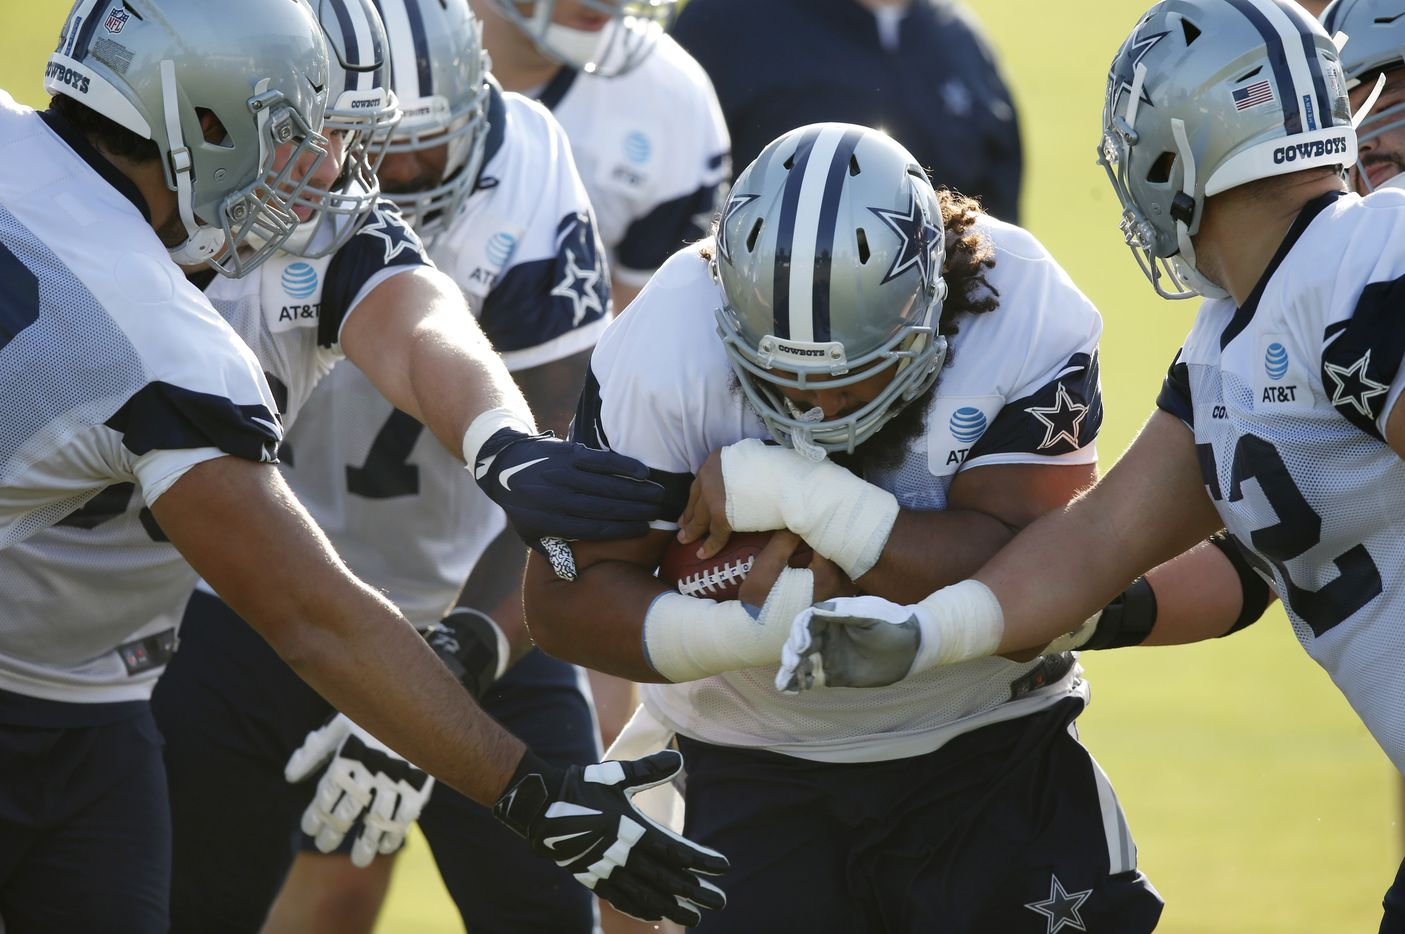 Dallas Cowboys center Joe Looney (73) holds the ball tightly as he runs through a gauntlet of players swiping at the ball during the first day of training camp at Dallas Cowboys headquarters at The Star in Frisco, Texas on Friday, August 14, 2020. (Vernon Bryant/The Dallas Morning News)